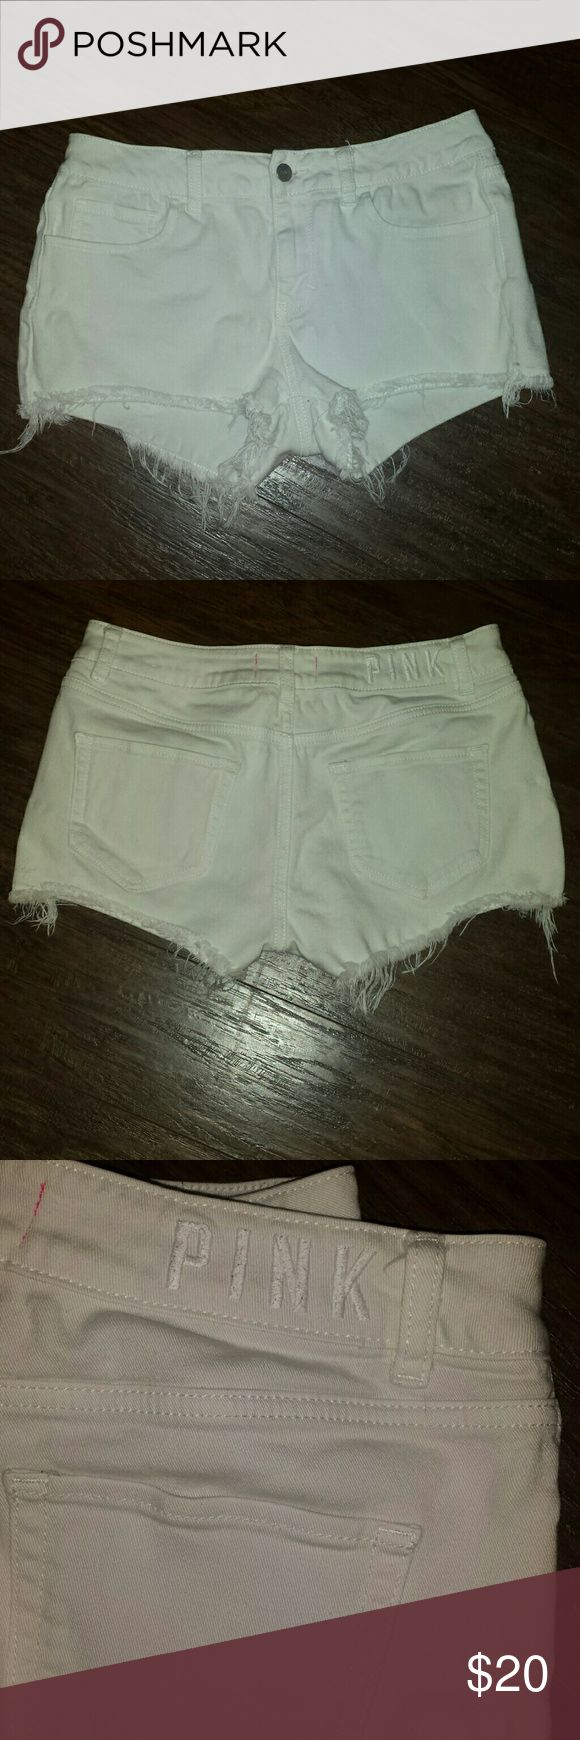 PINK VS white cutoff jean shorts PINK Victoria's Secret  white cutoff jean shorts. Worn twice like new. No stains rips or tears. PINK Victoria's Secret Shorts Jean Shorts